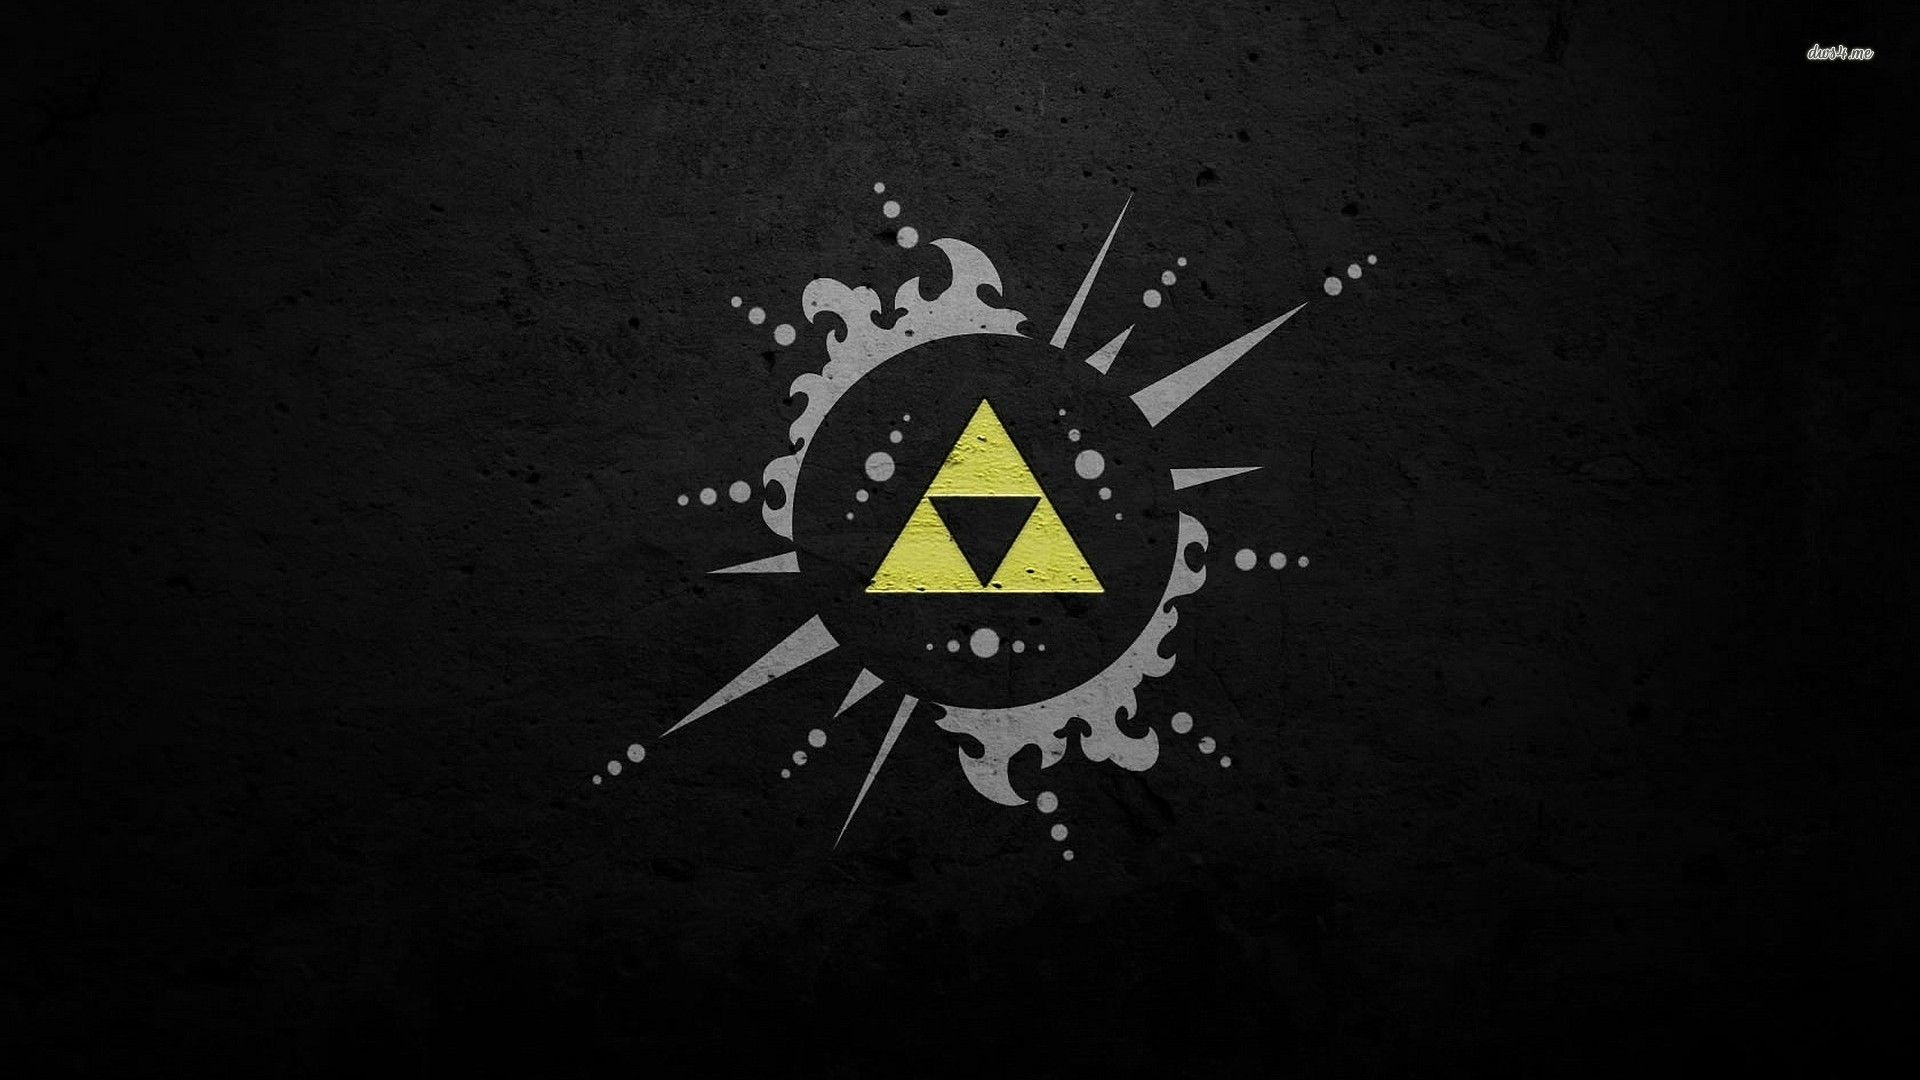 Gaming Wall Paper Dump Zelda Hd Legend Of Zelda